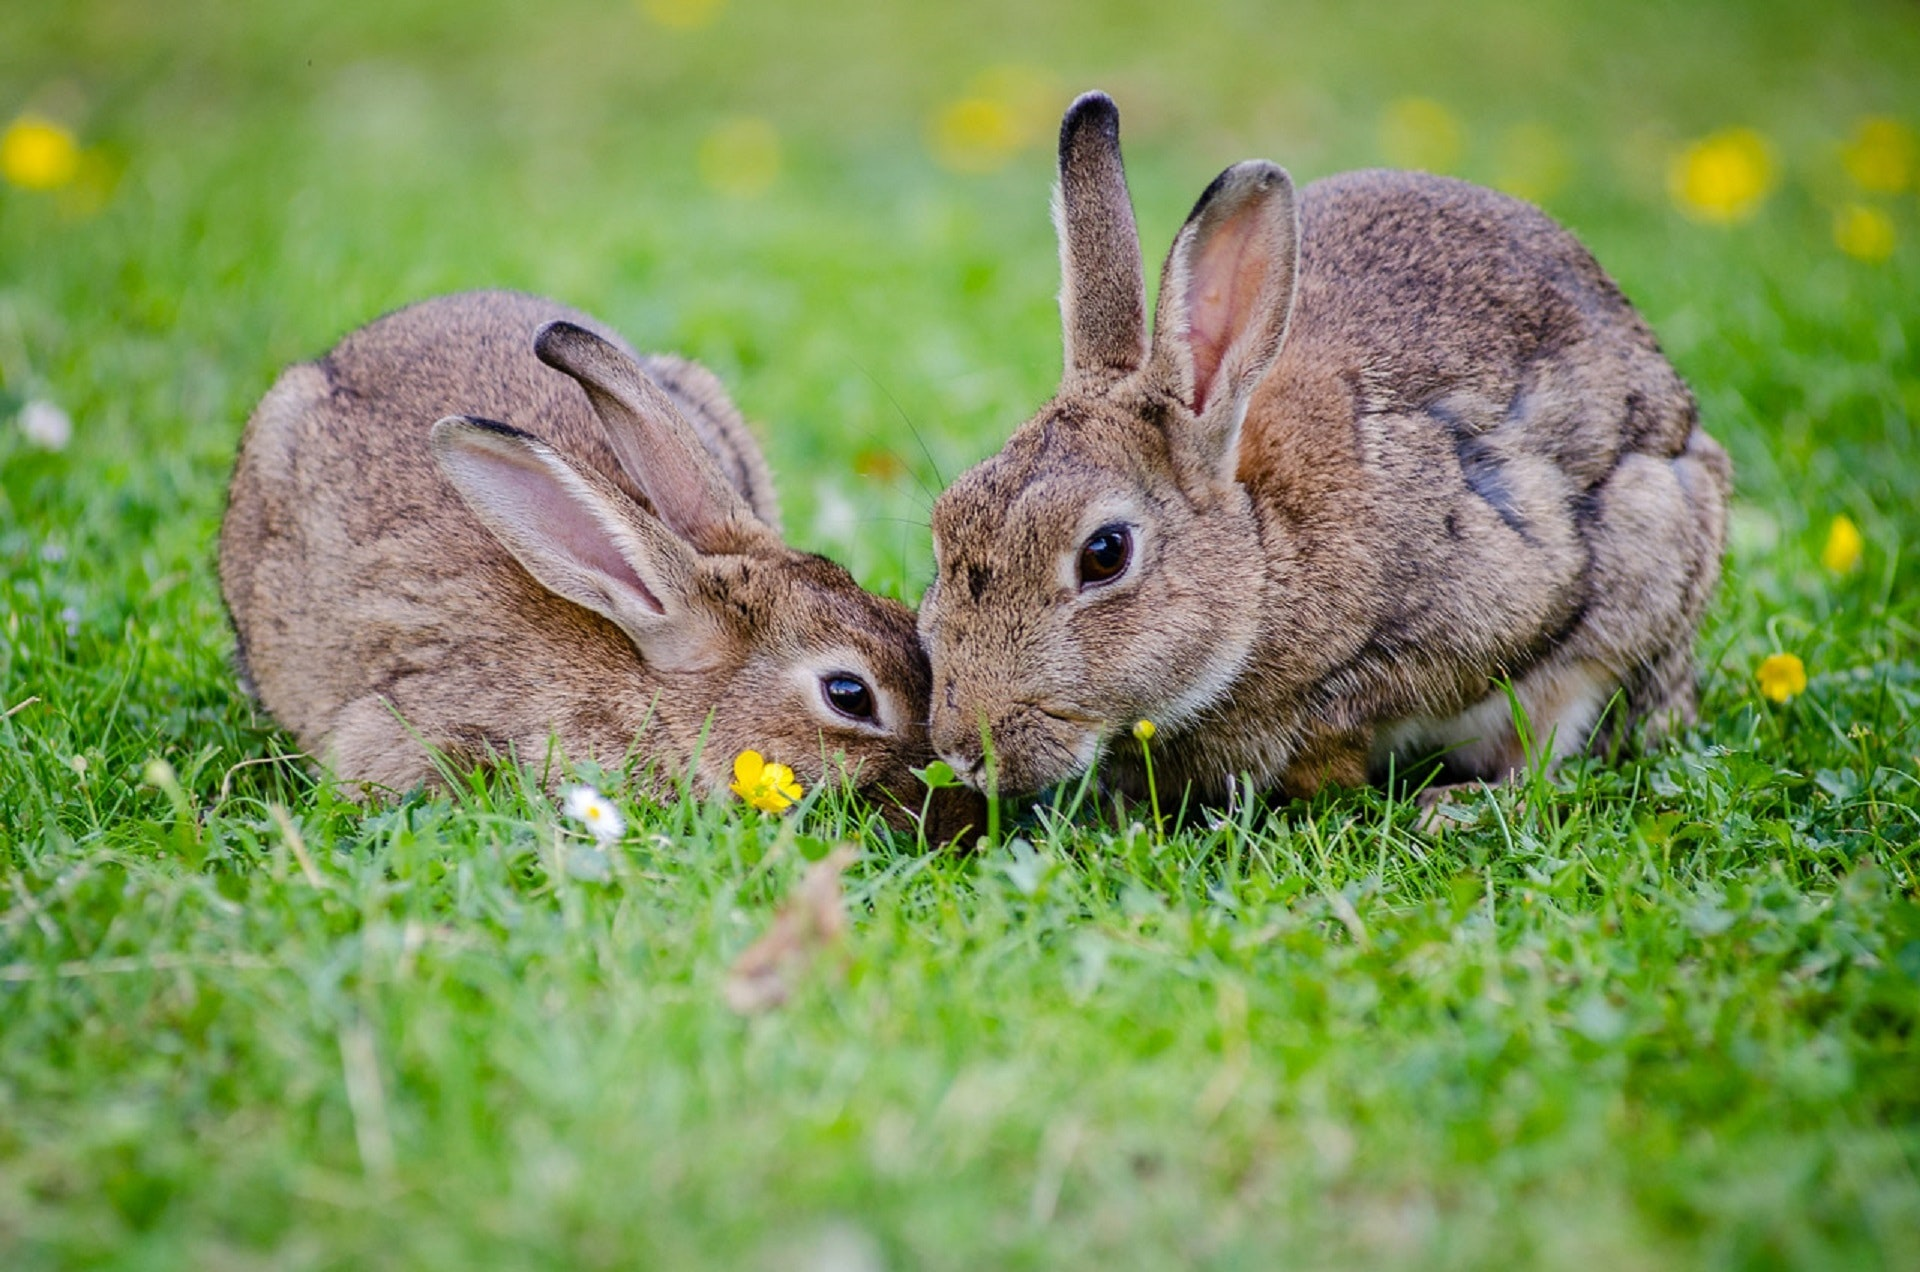 Rabbits eating grass at daytime.